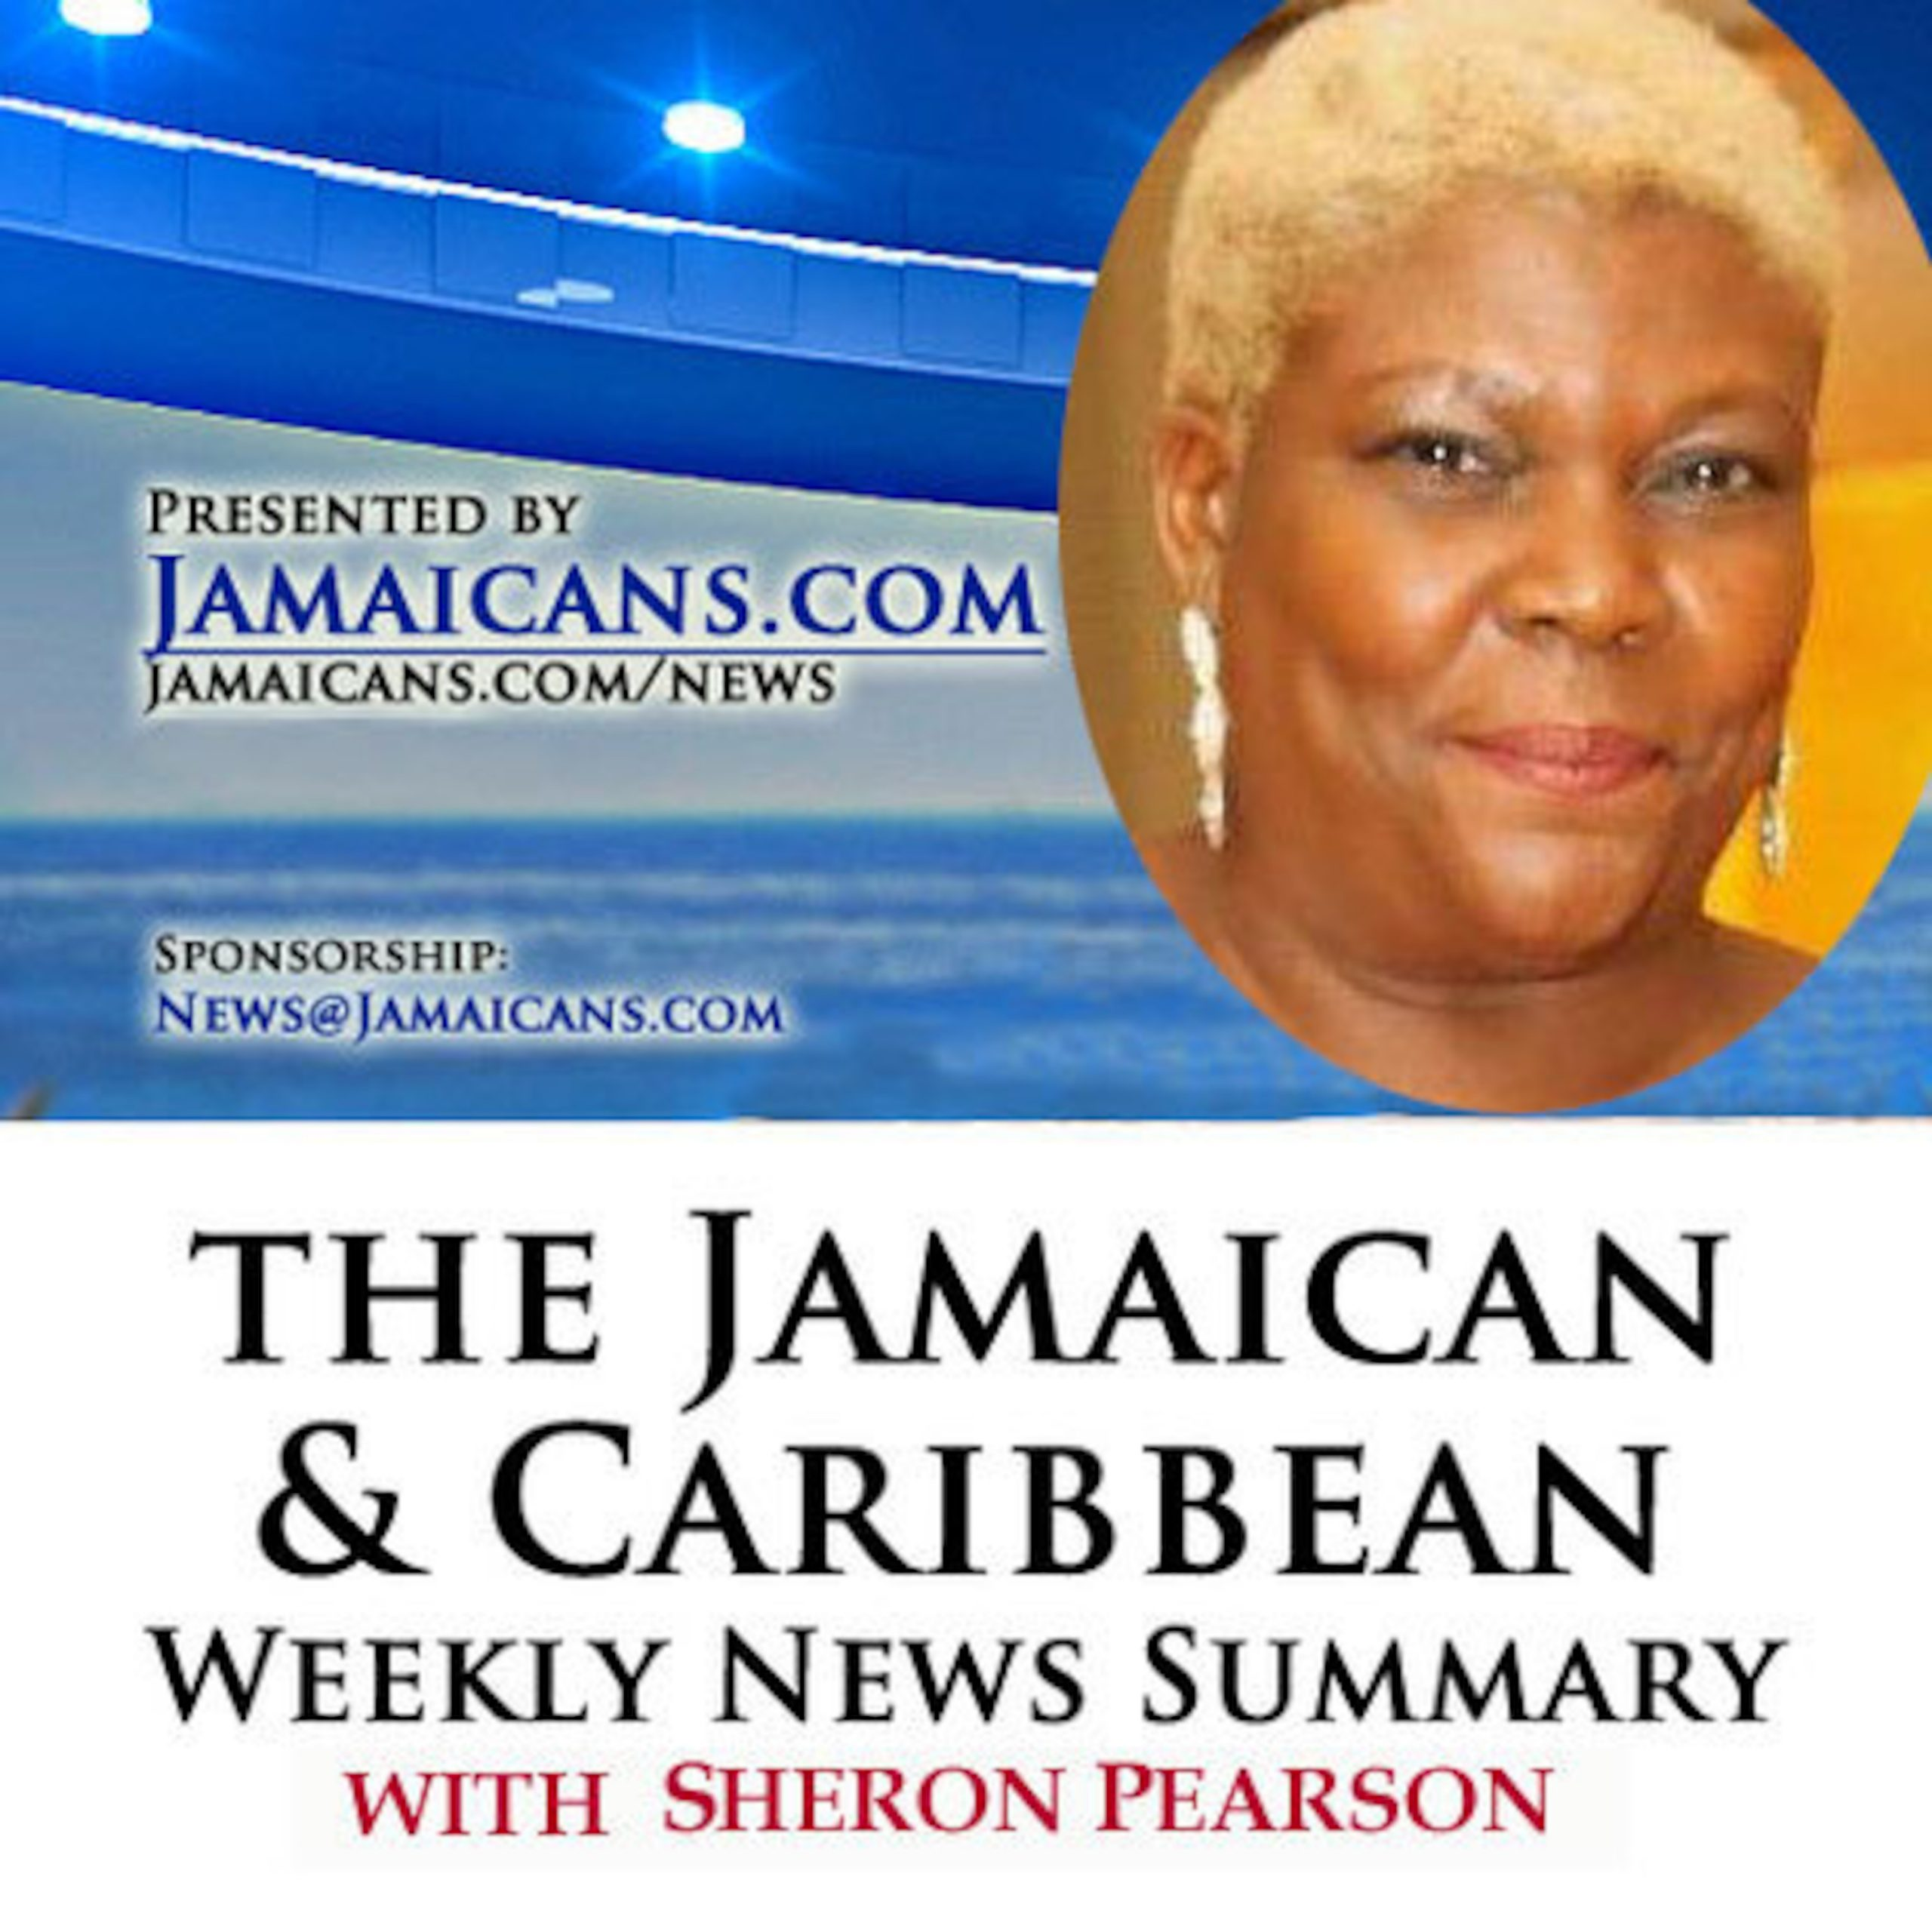 Listen to the Podcast of The Jamaica & Caribbean Weekly News Summary for the week ending January 3 2020